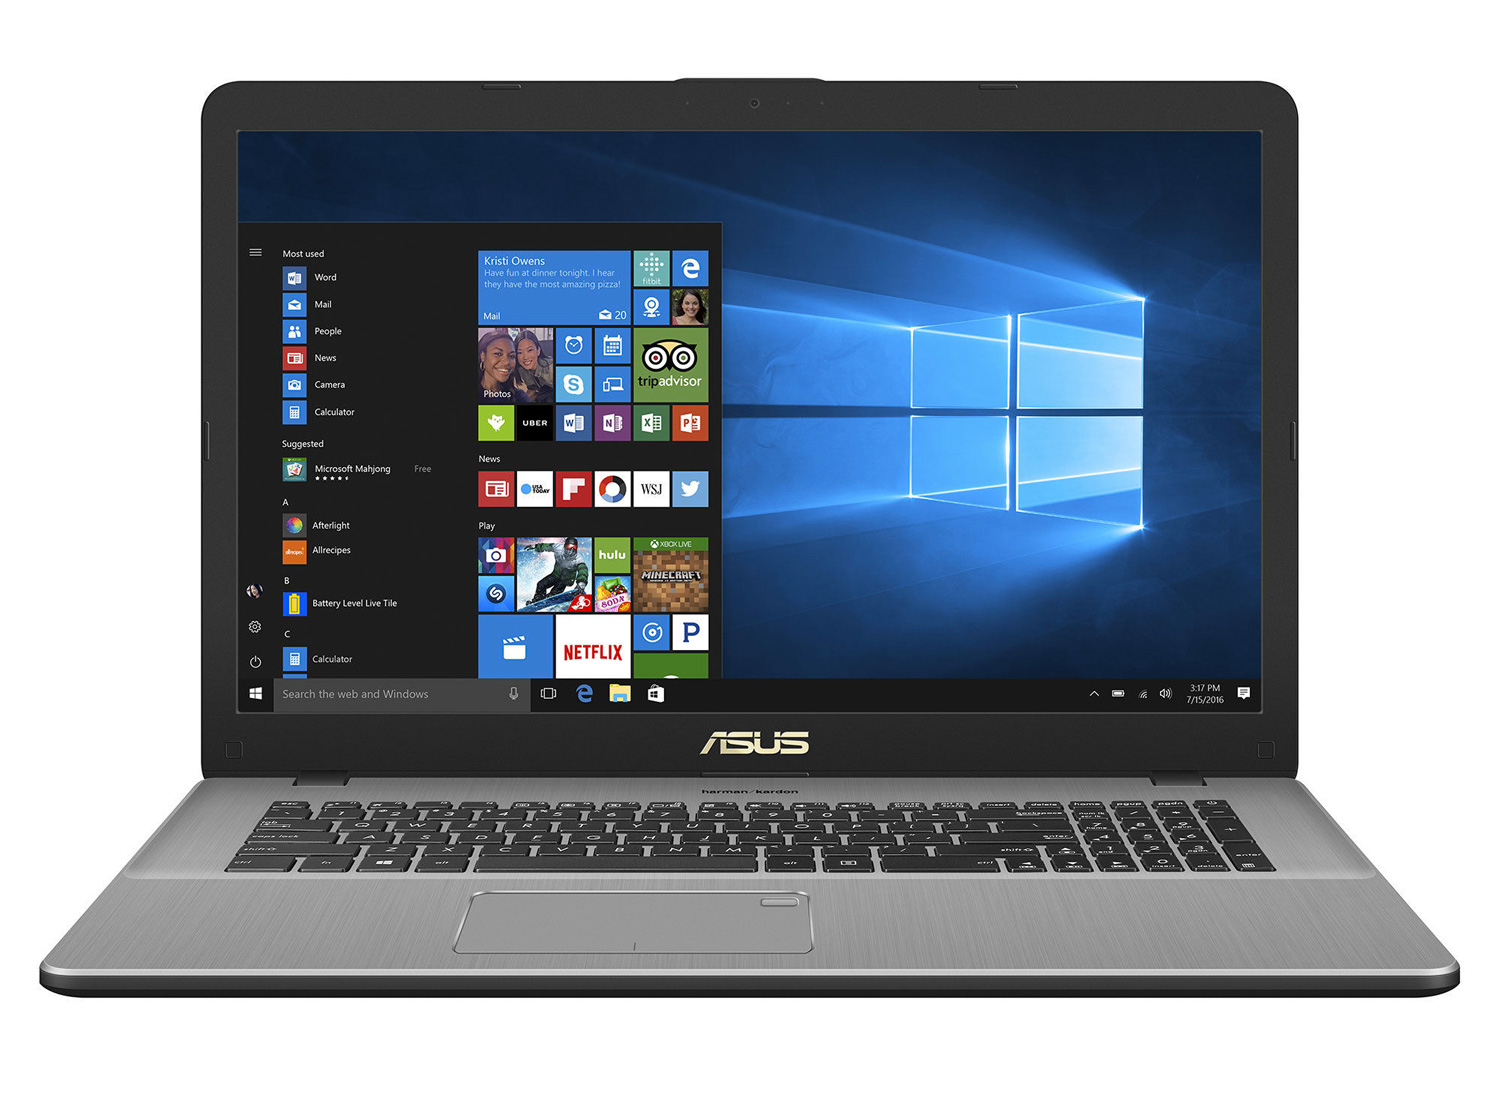 asus vivobook x705uv bx111t achetez au meilleur prix. Black Bedroom Furniture Sets. Home Design Ideas